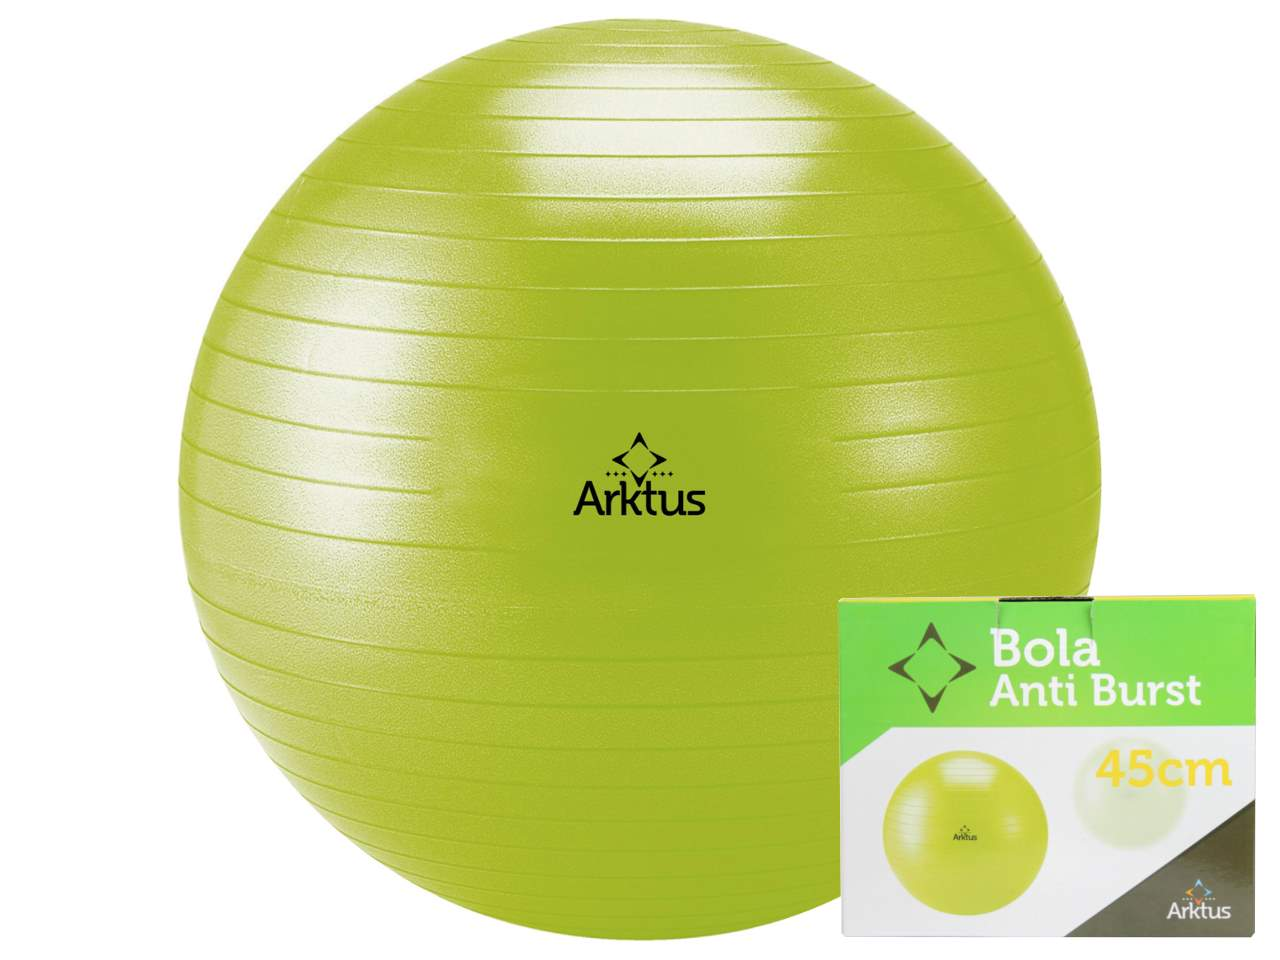 Bola Gynastica Anti-burst